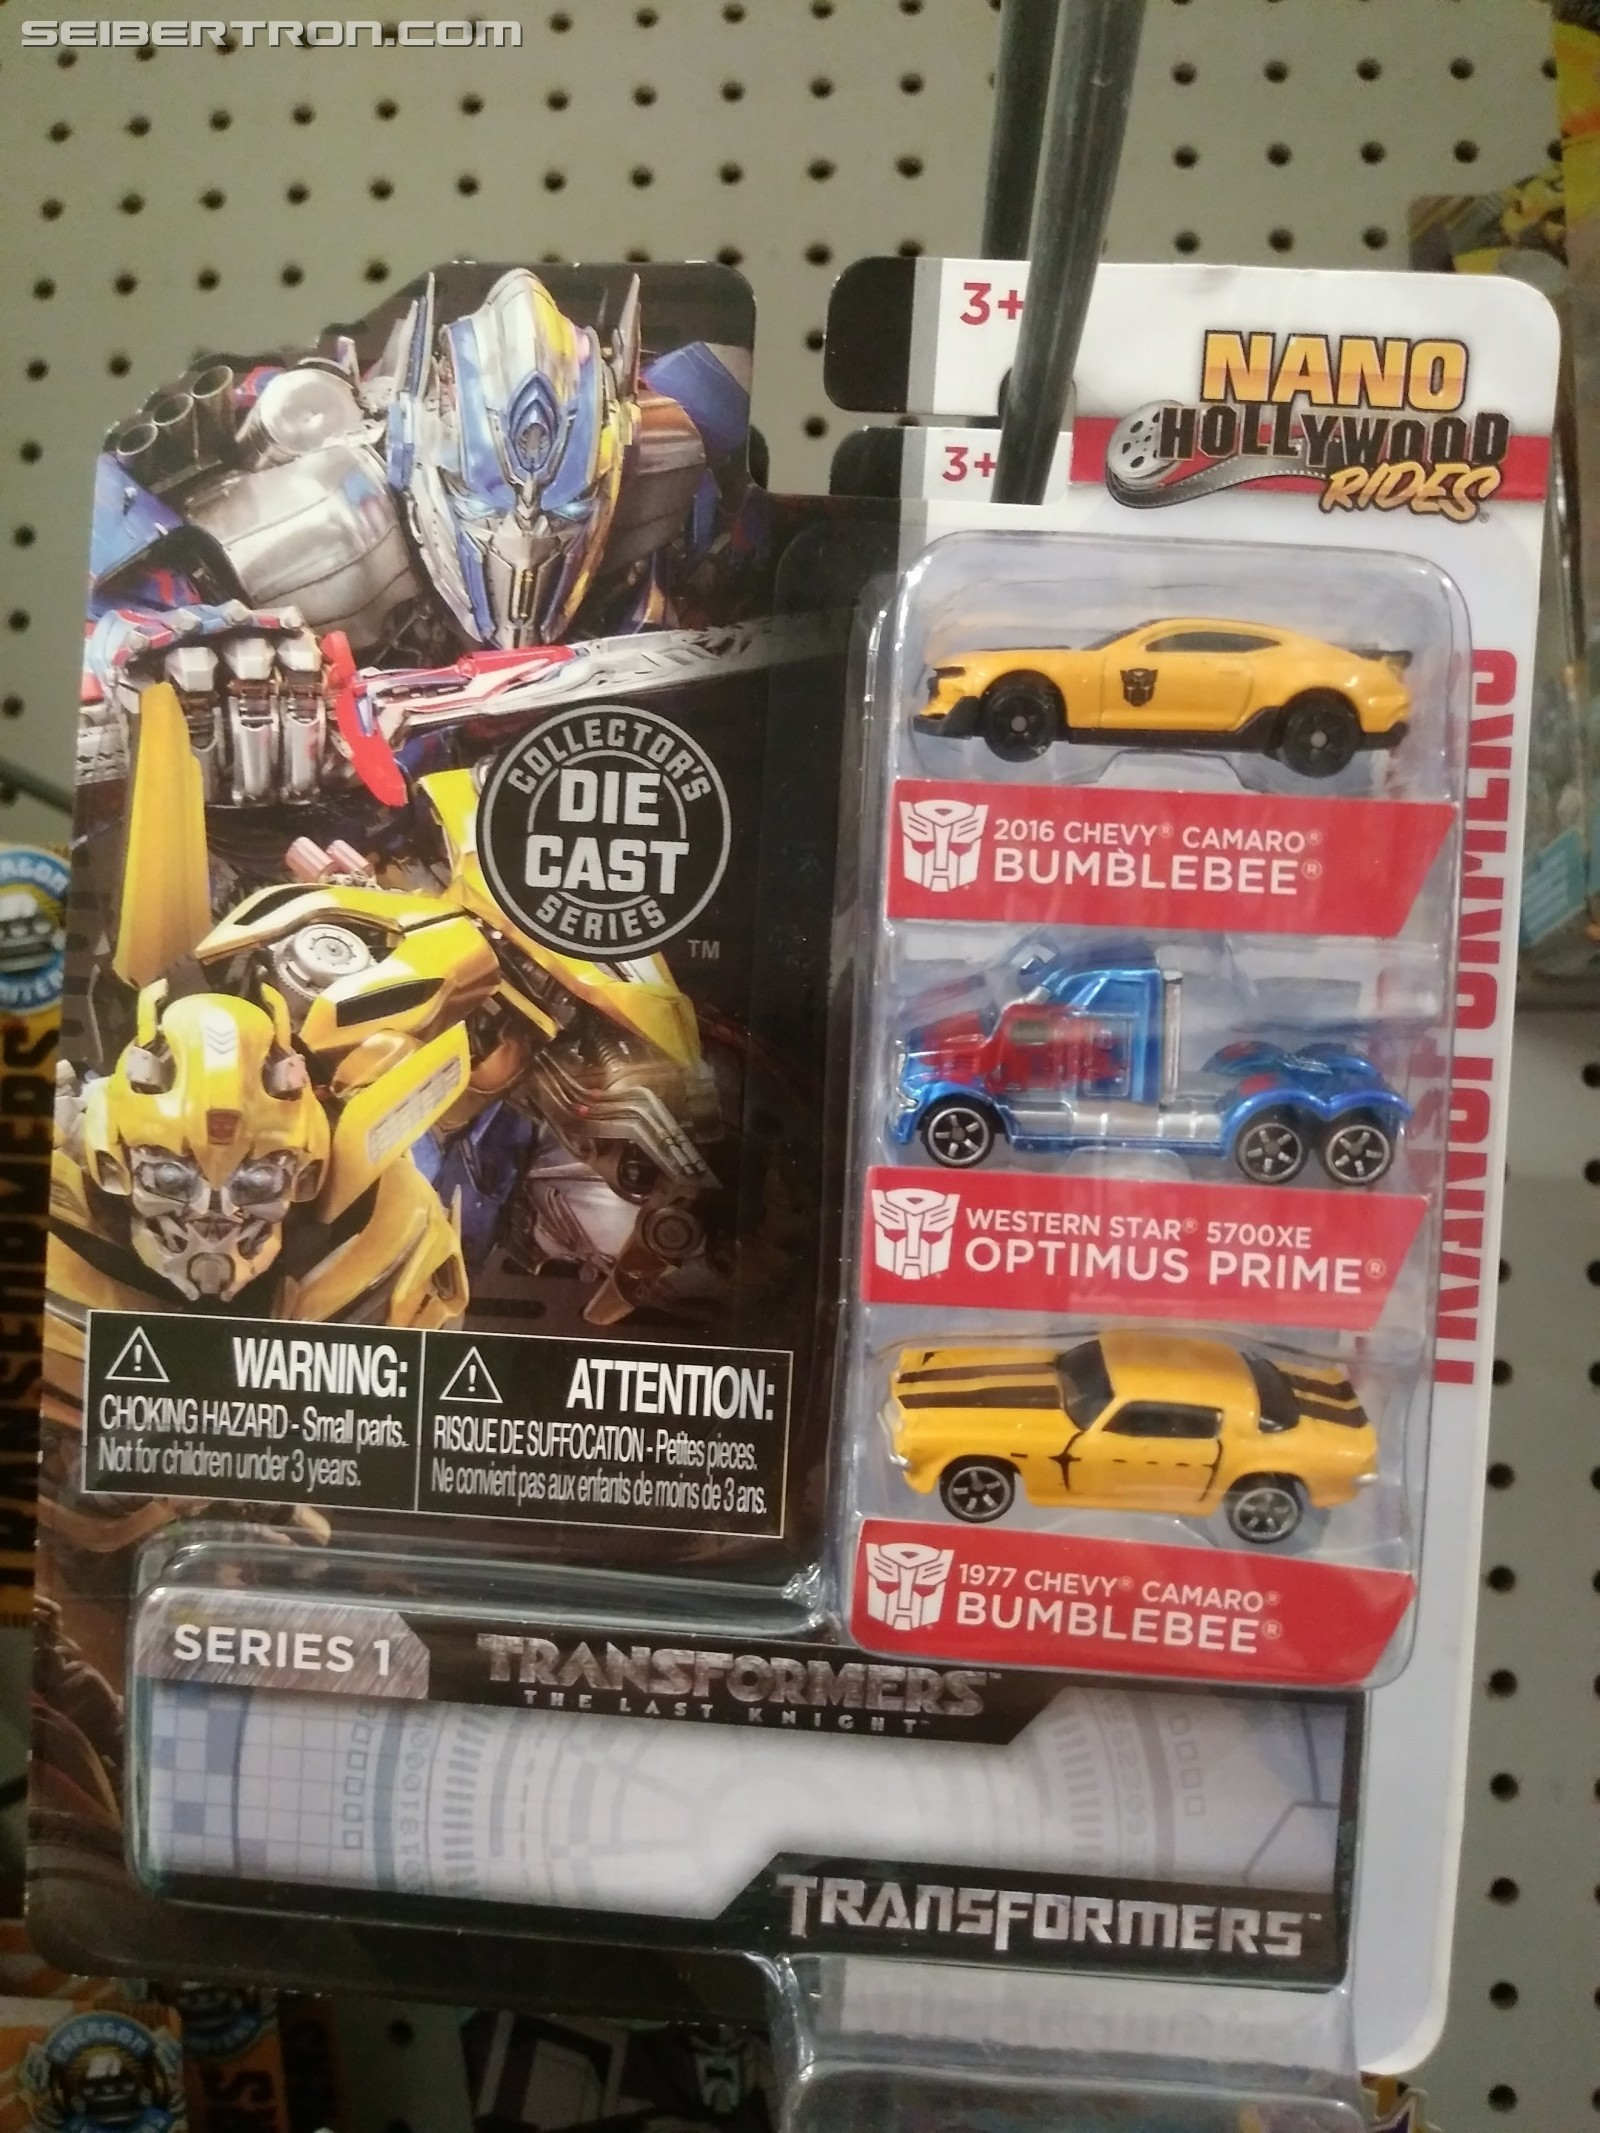 Transformers News: Series 1 of Transformers Nano Hollywood Rides Released in Canada